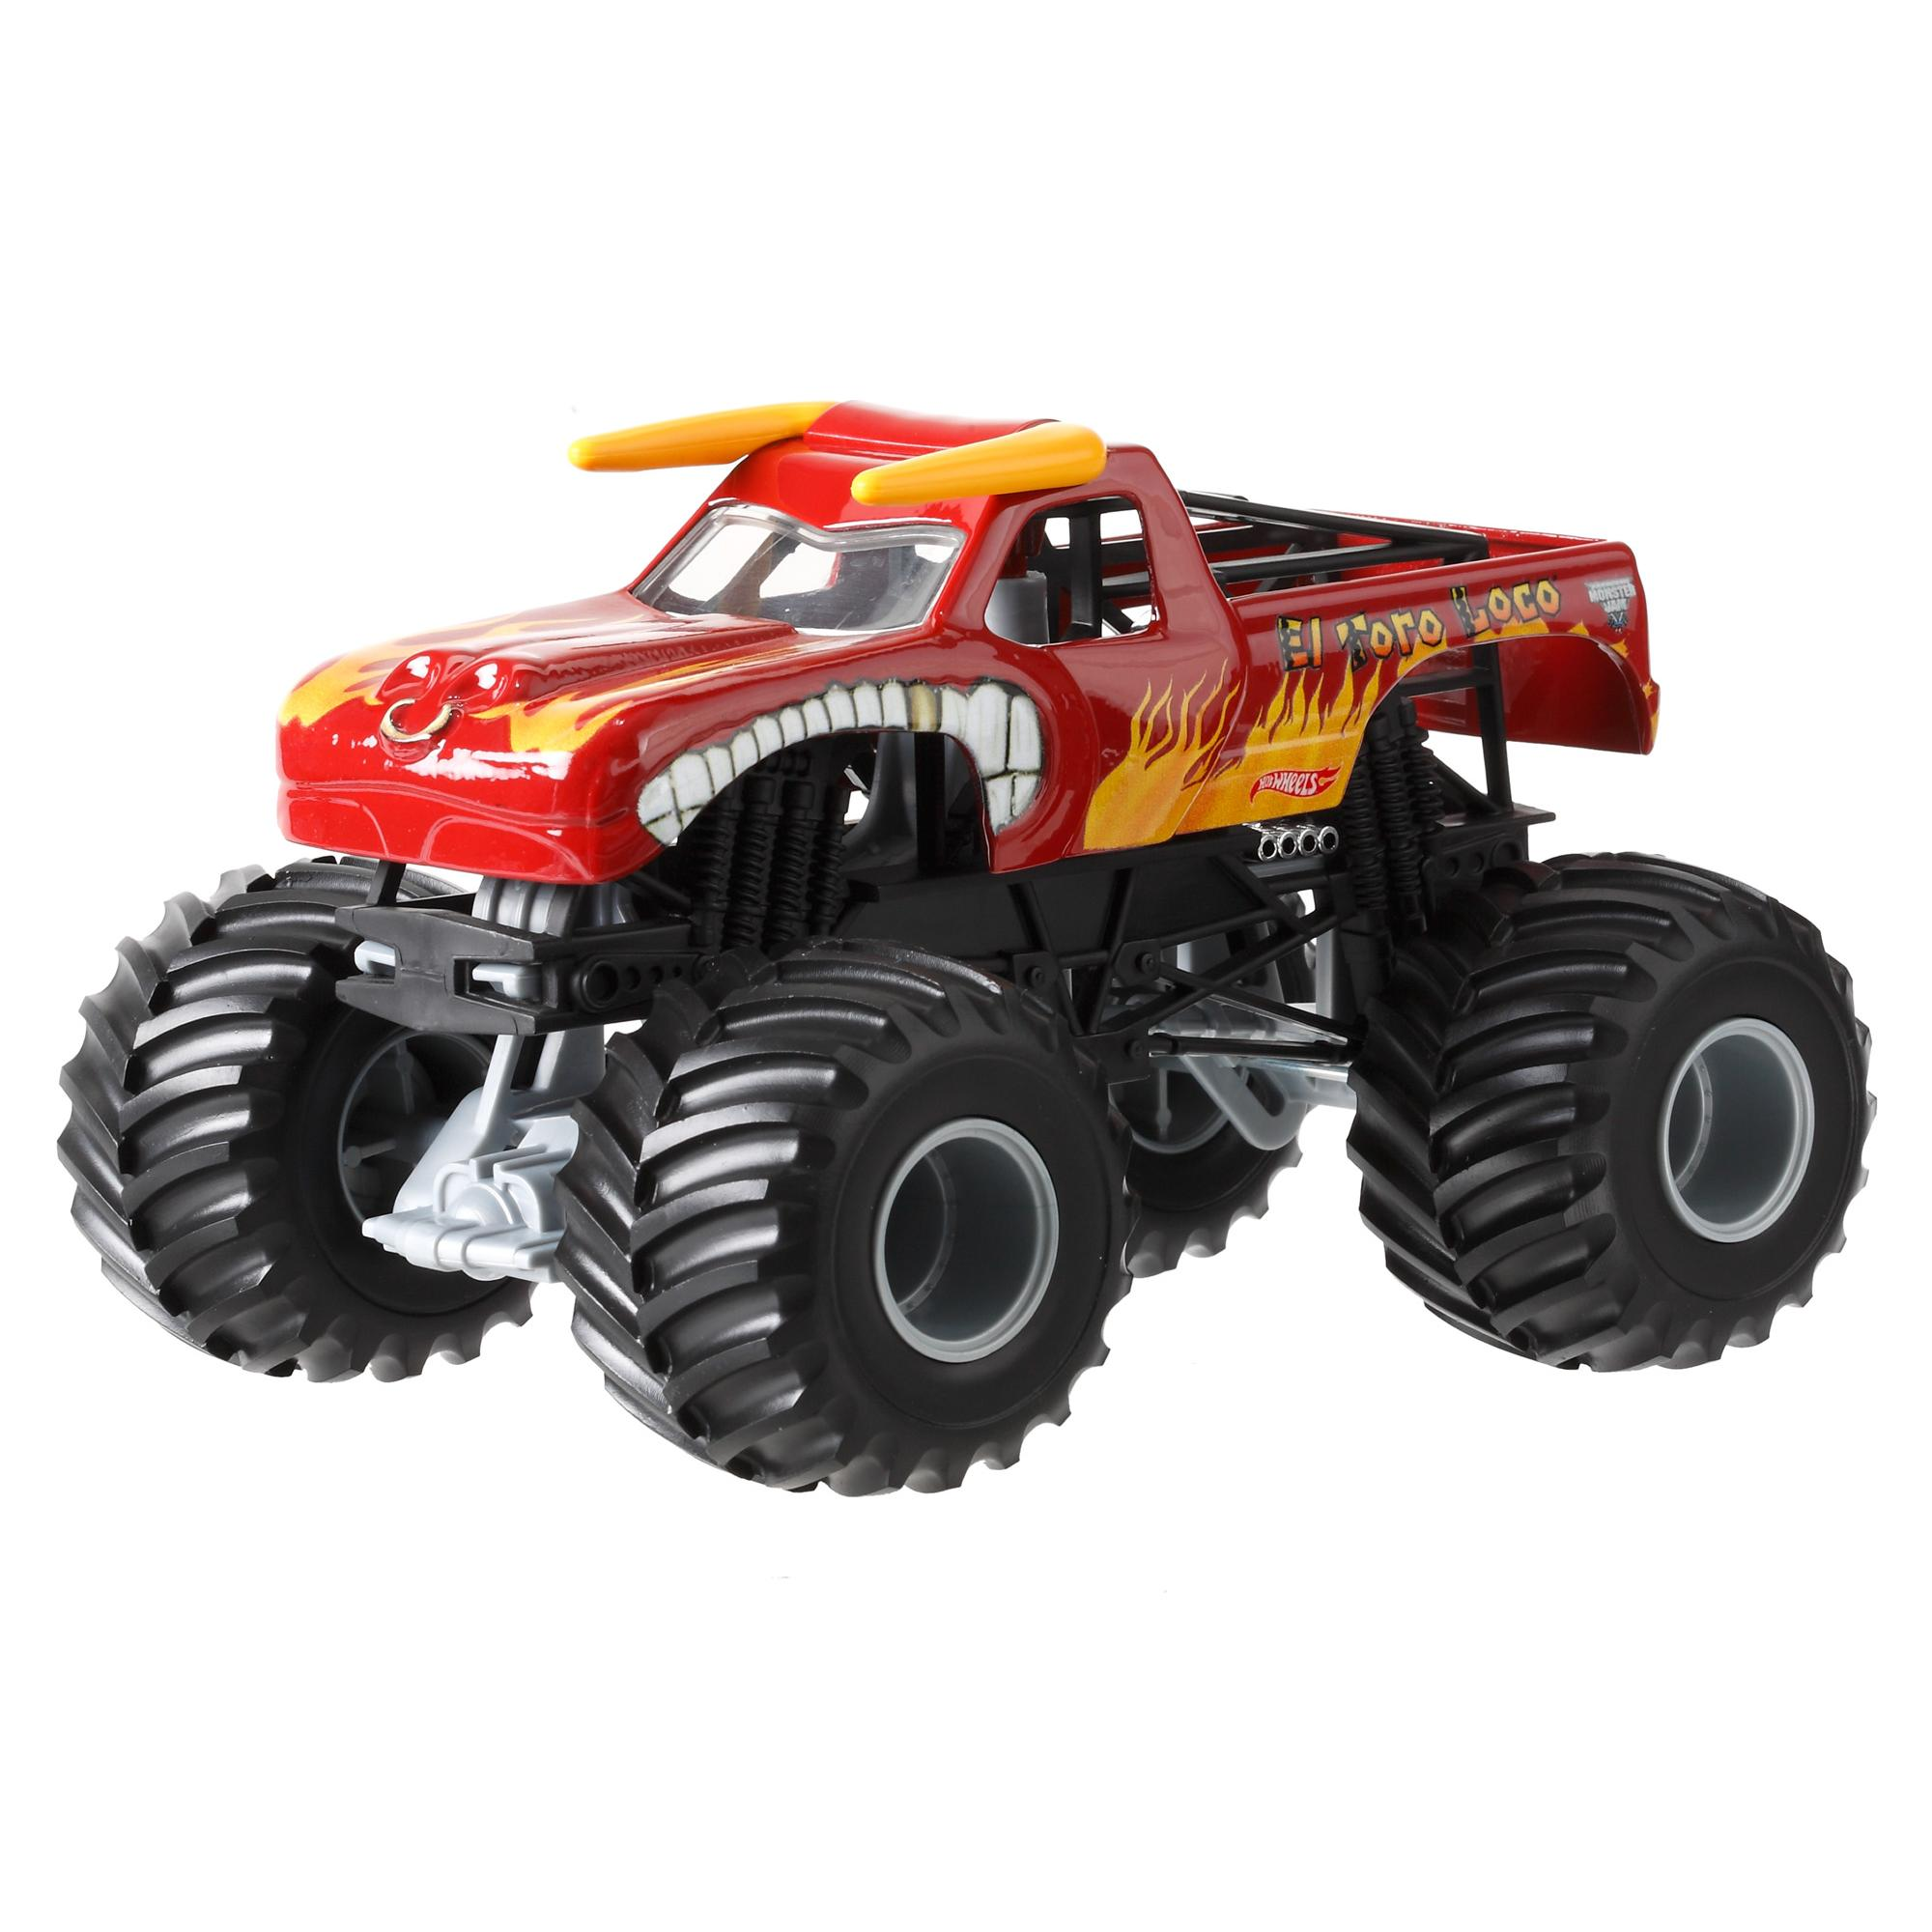 Hot Wheels Monster Jam 1:24 El Toro Loco Die-Cast Vehicle